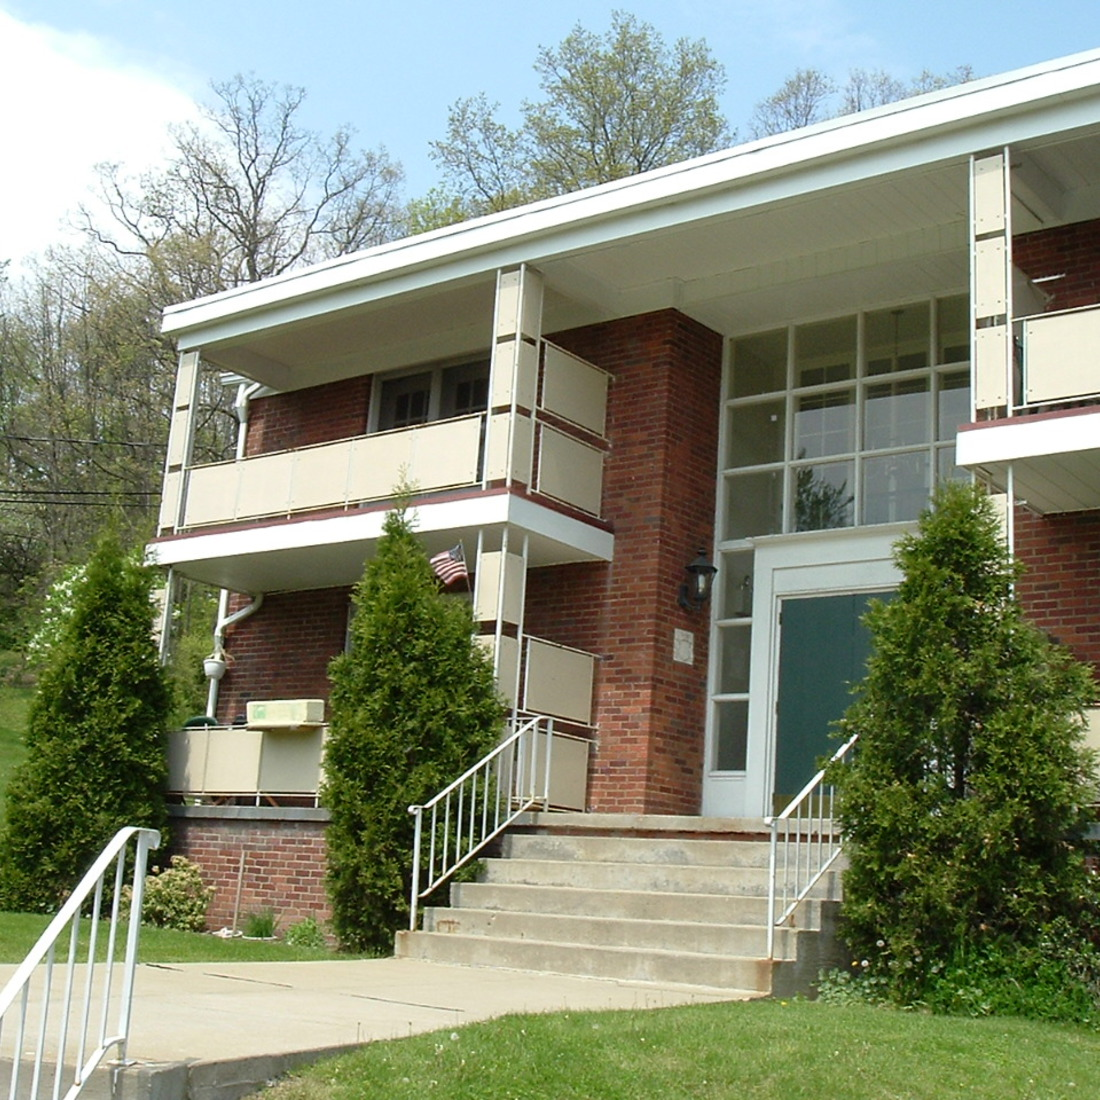 Chapel Hill Apartment Vacancy Rate: Franklin West